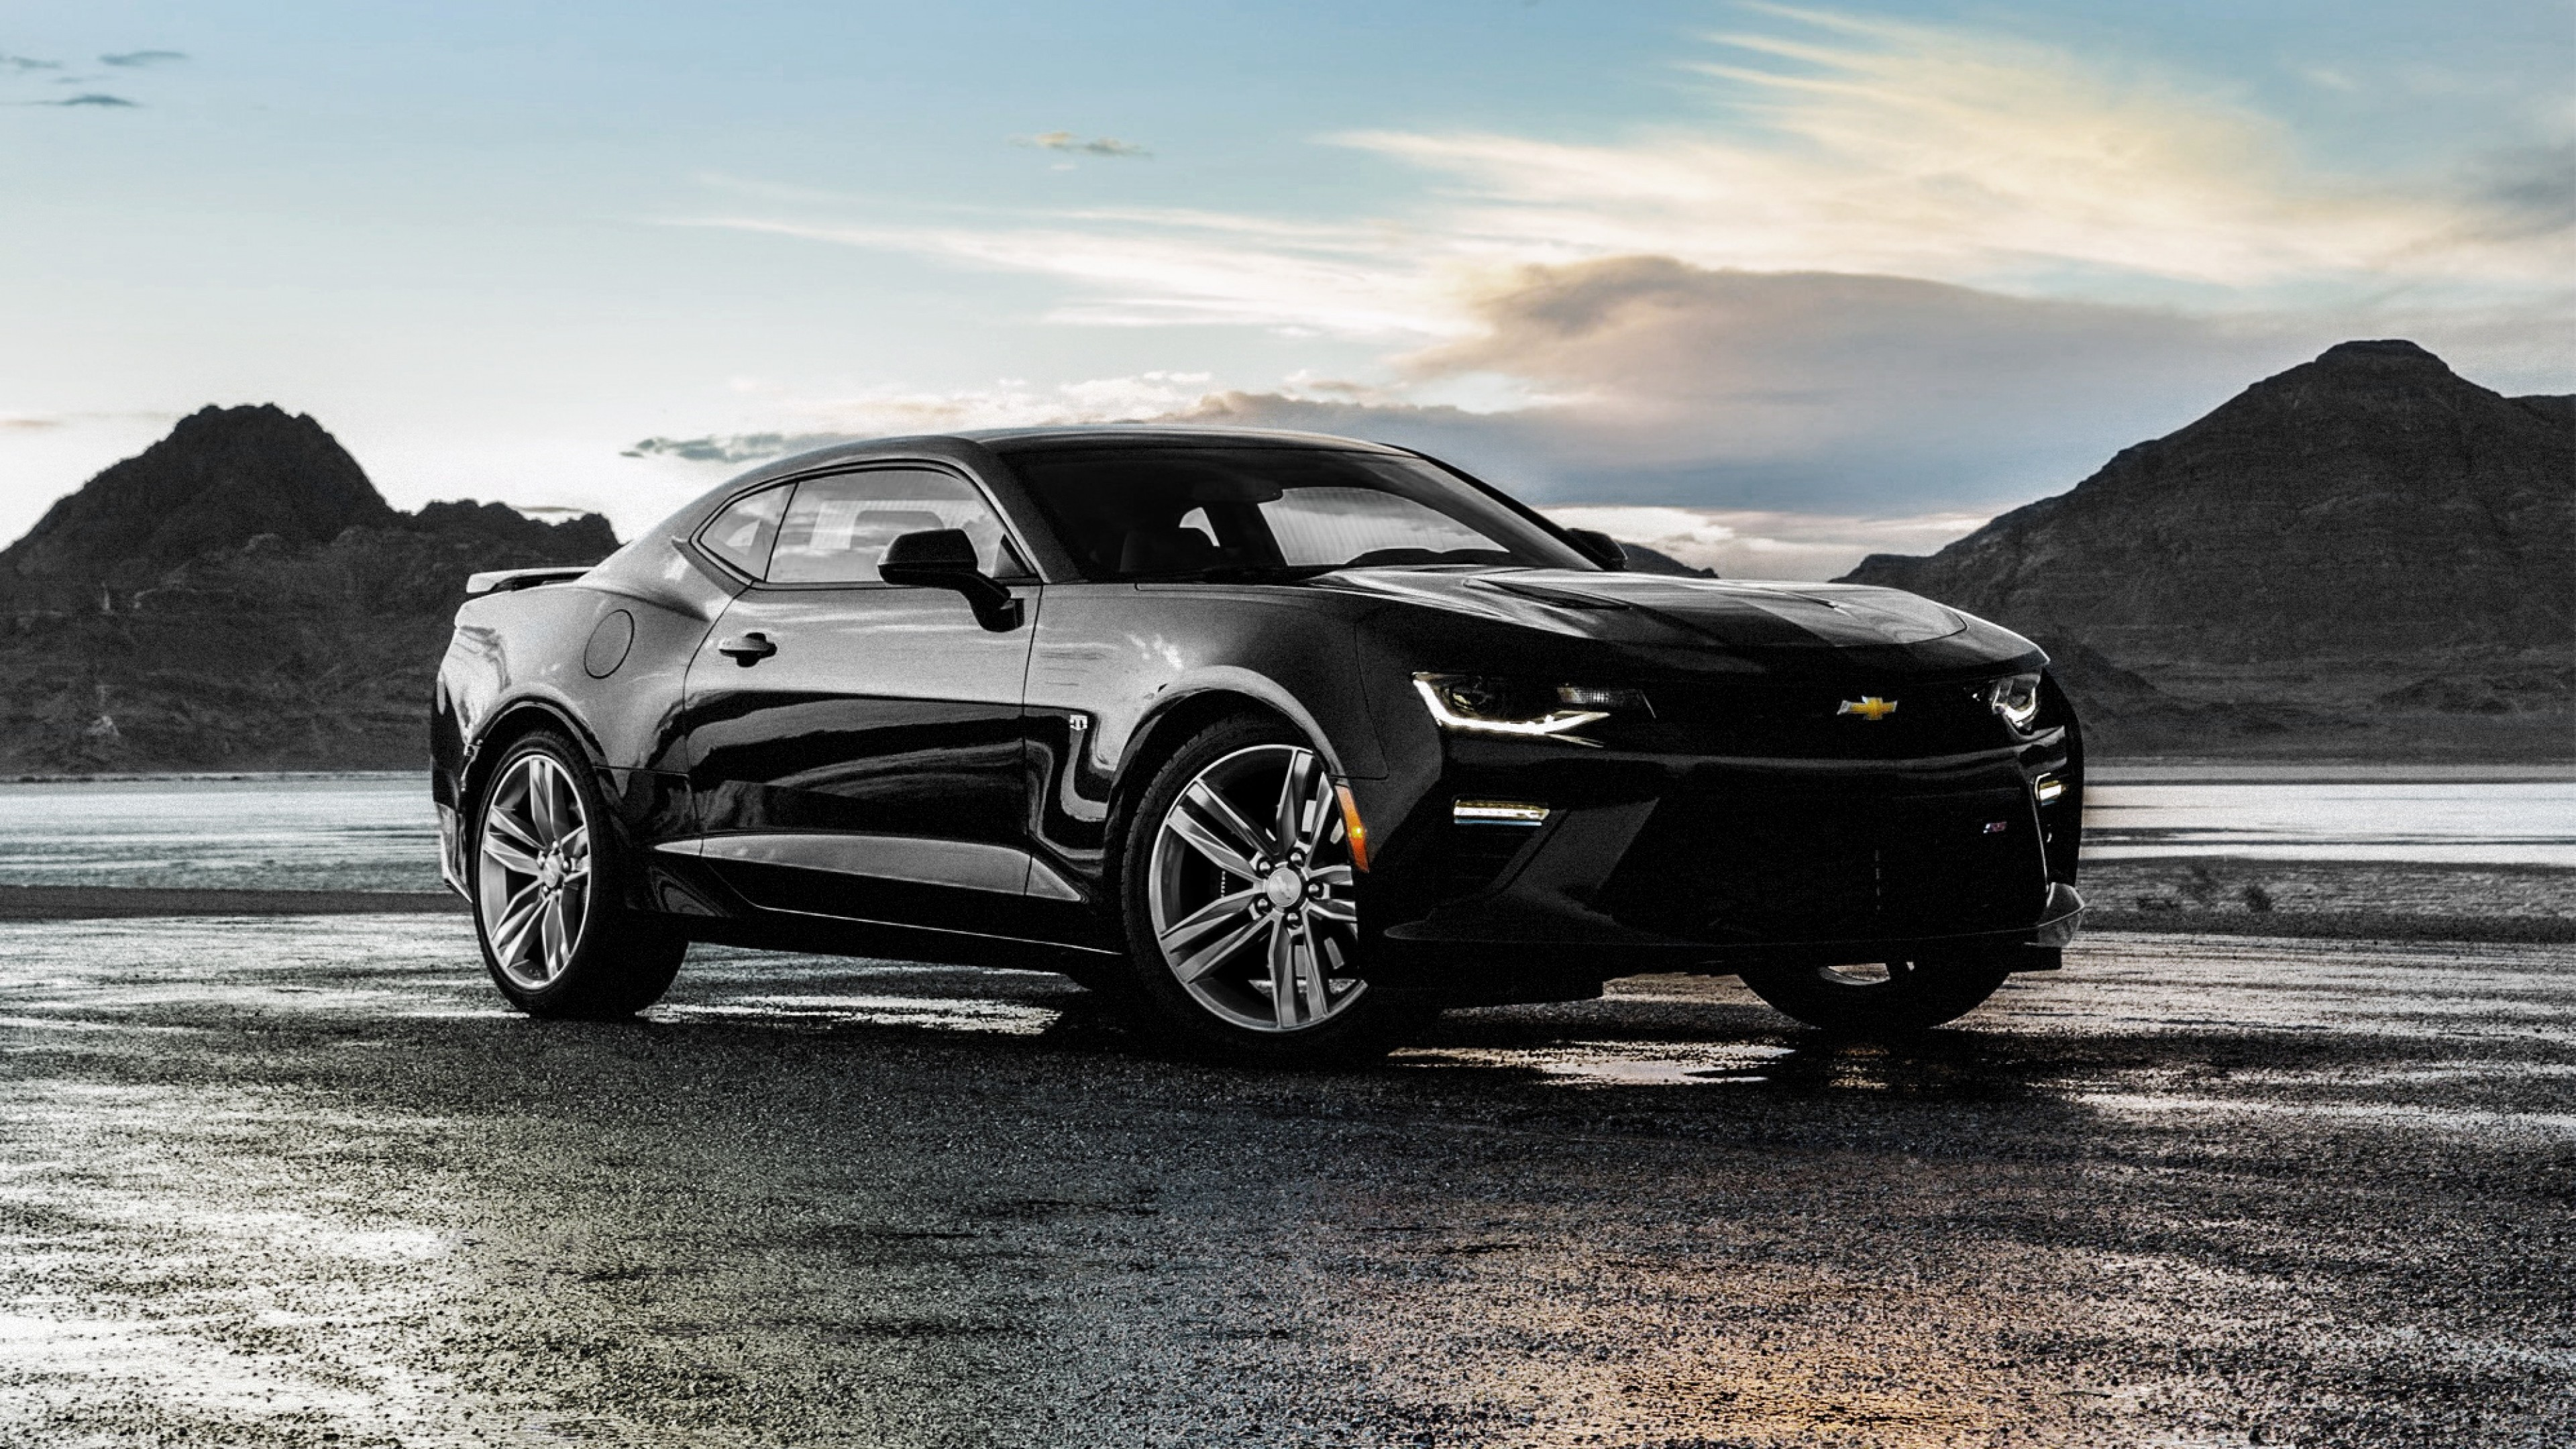 3840x2160 Chevrolet Camaro SS Black (1152x864 Resolution)